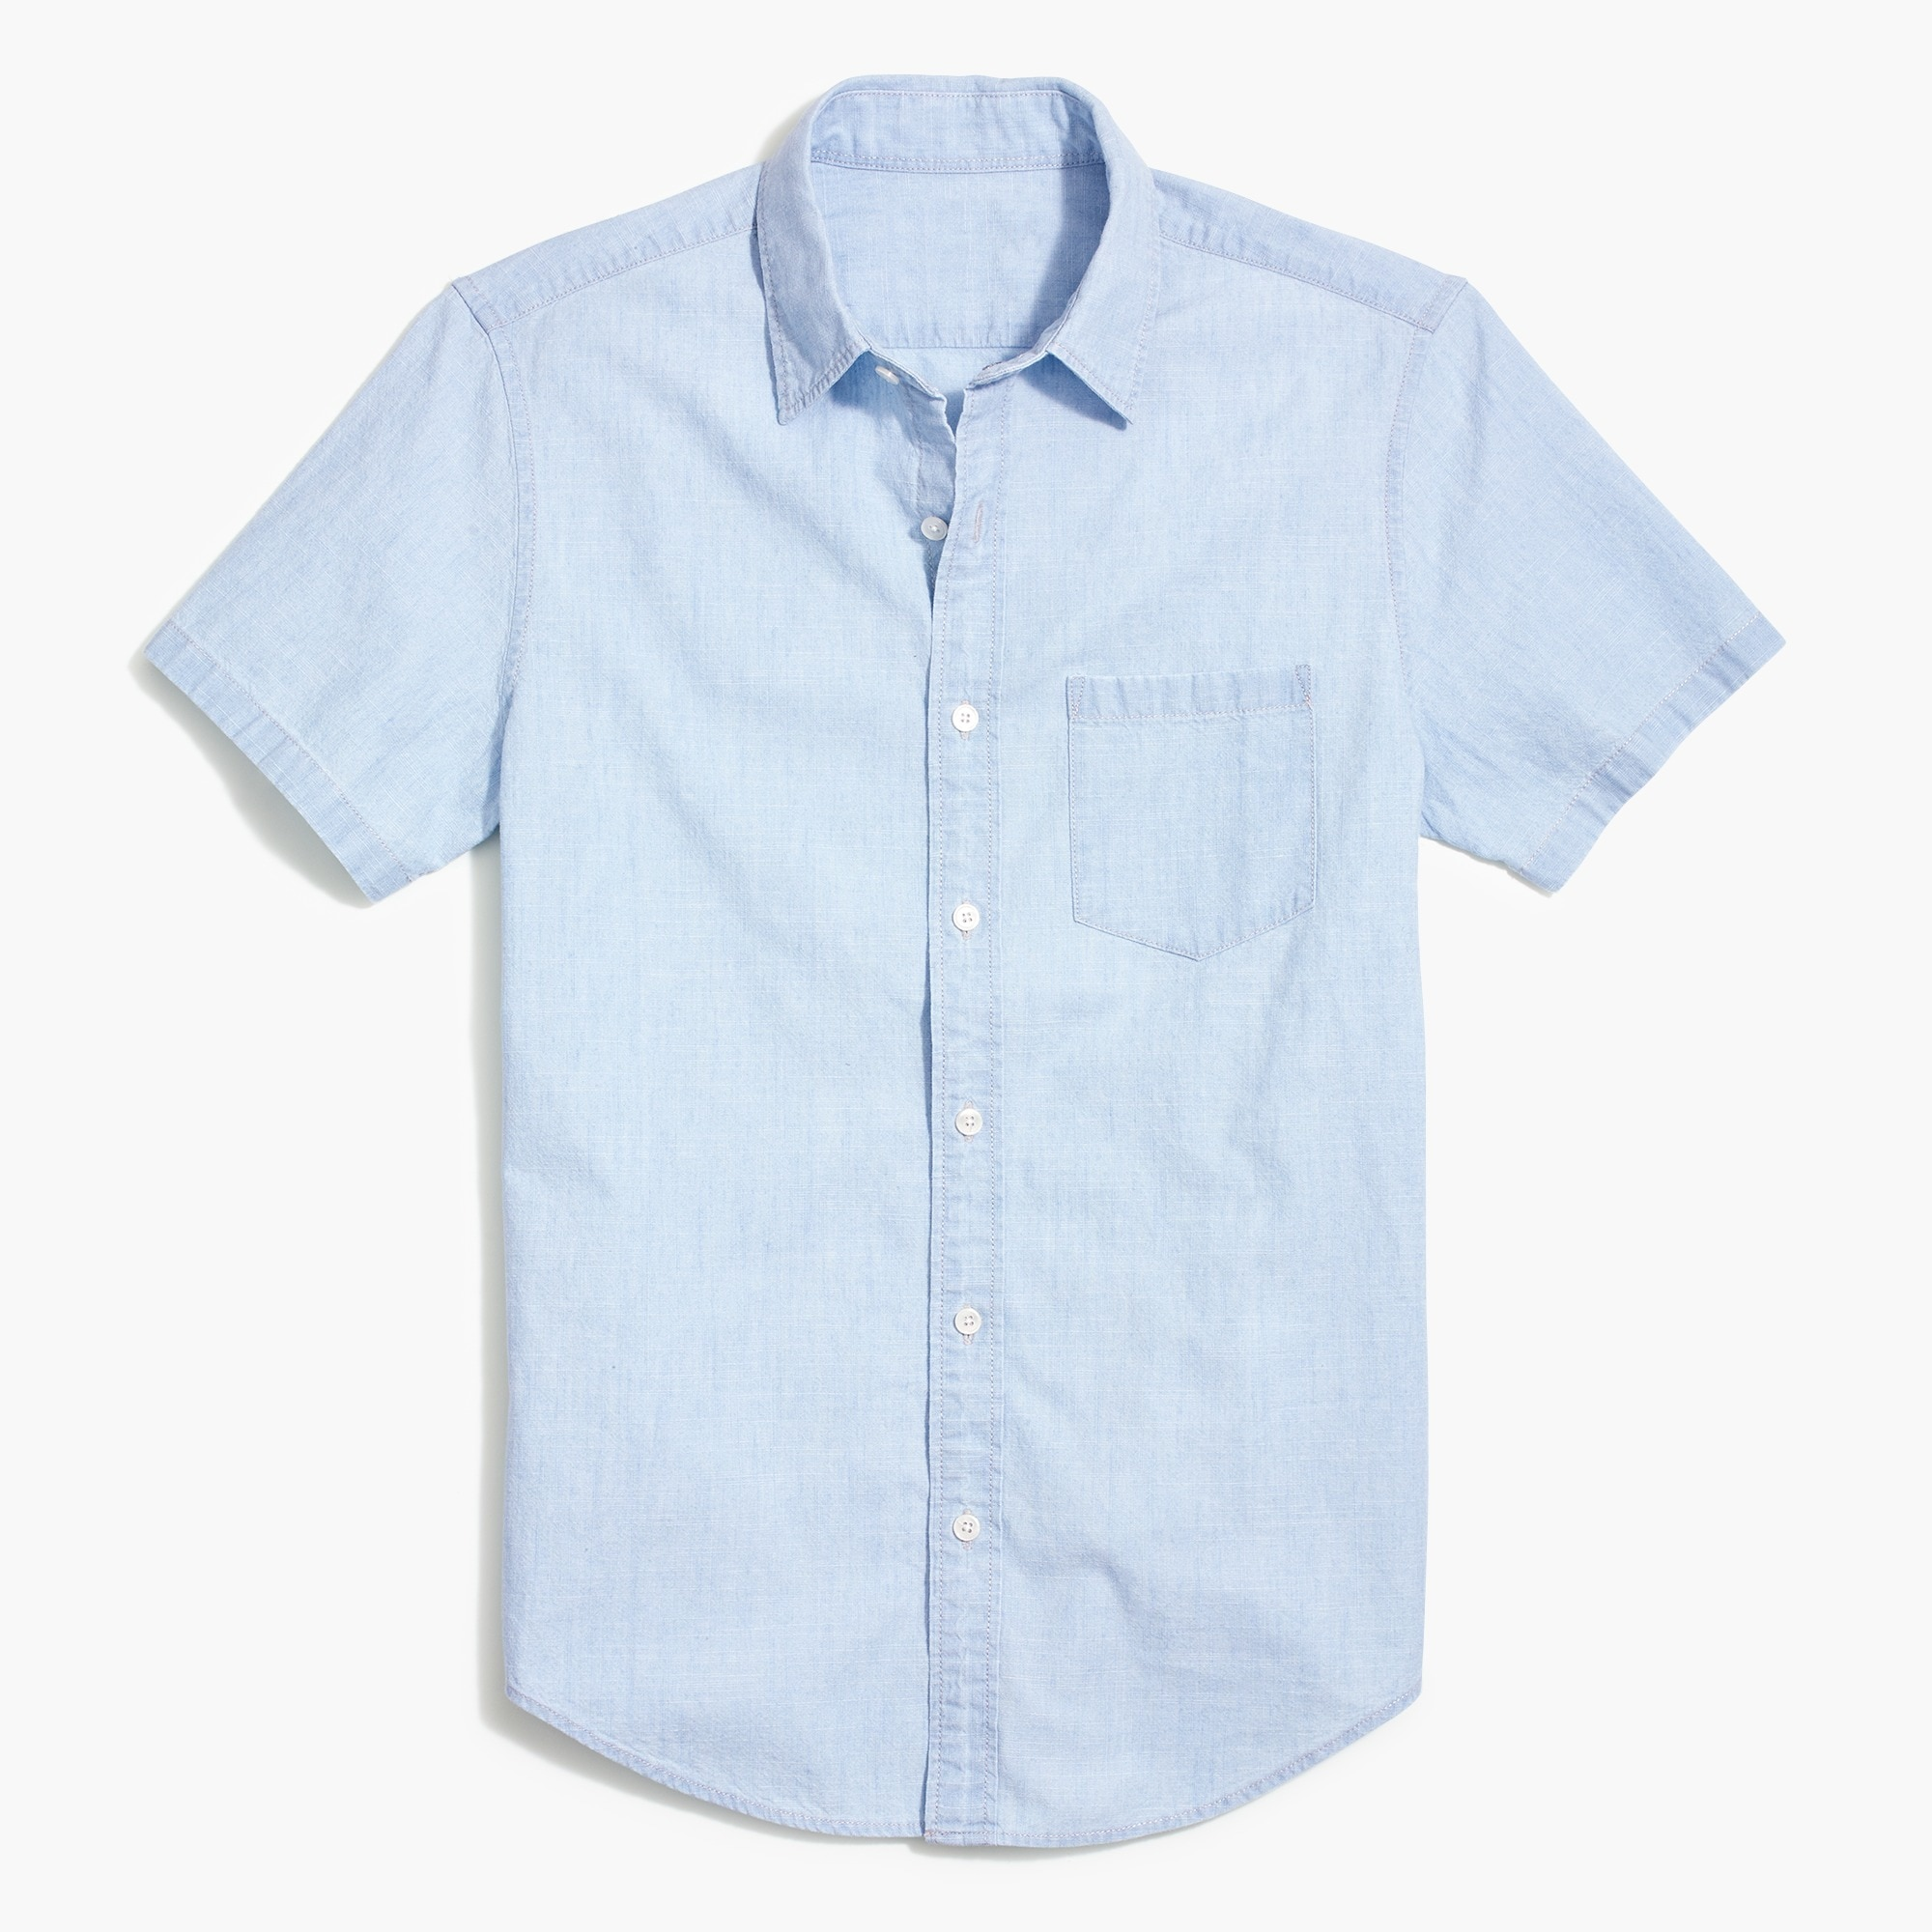 factory mens Slim short-sleeve chambray shirt